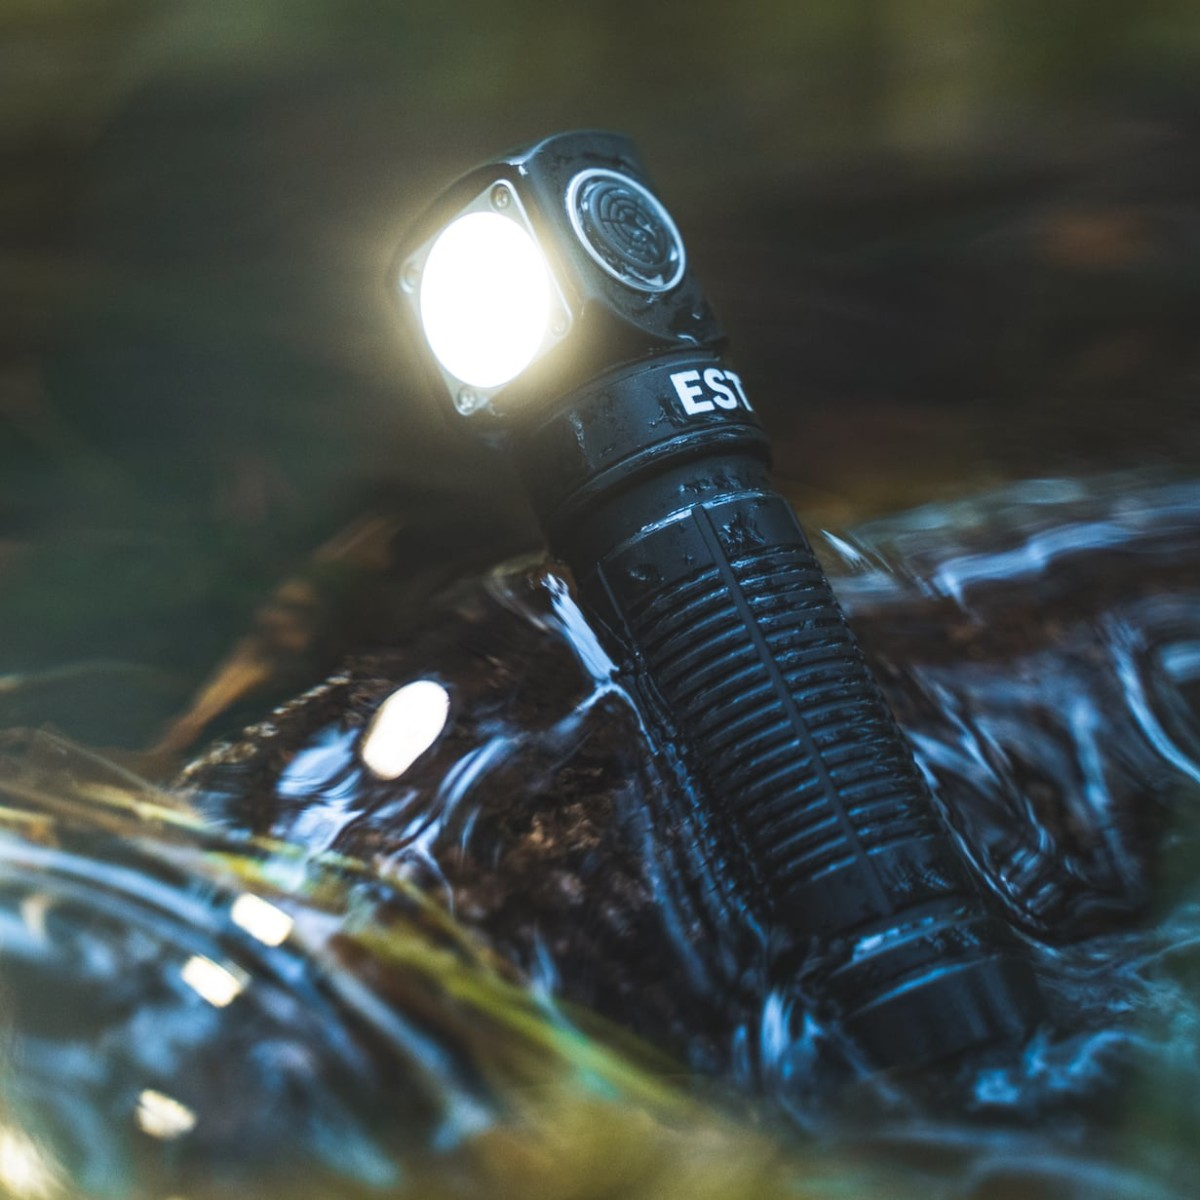 EST Torch L1 Versatile Flashlight is powerful and pocket-sized